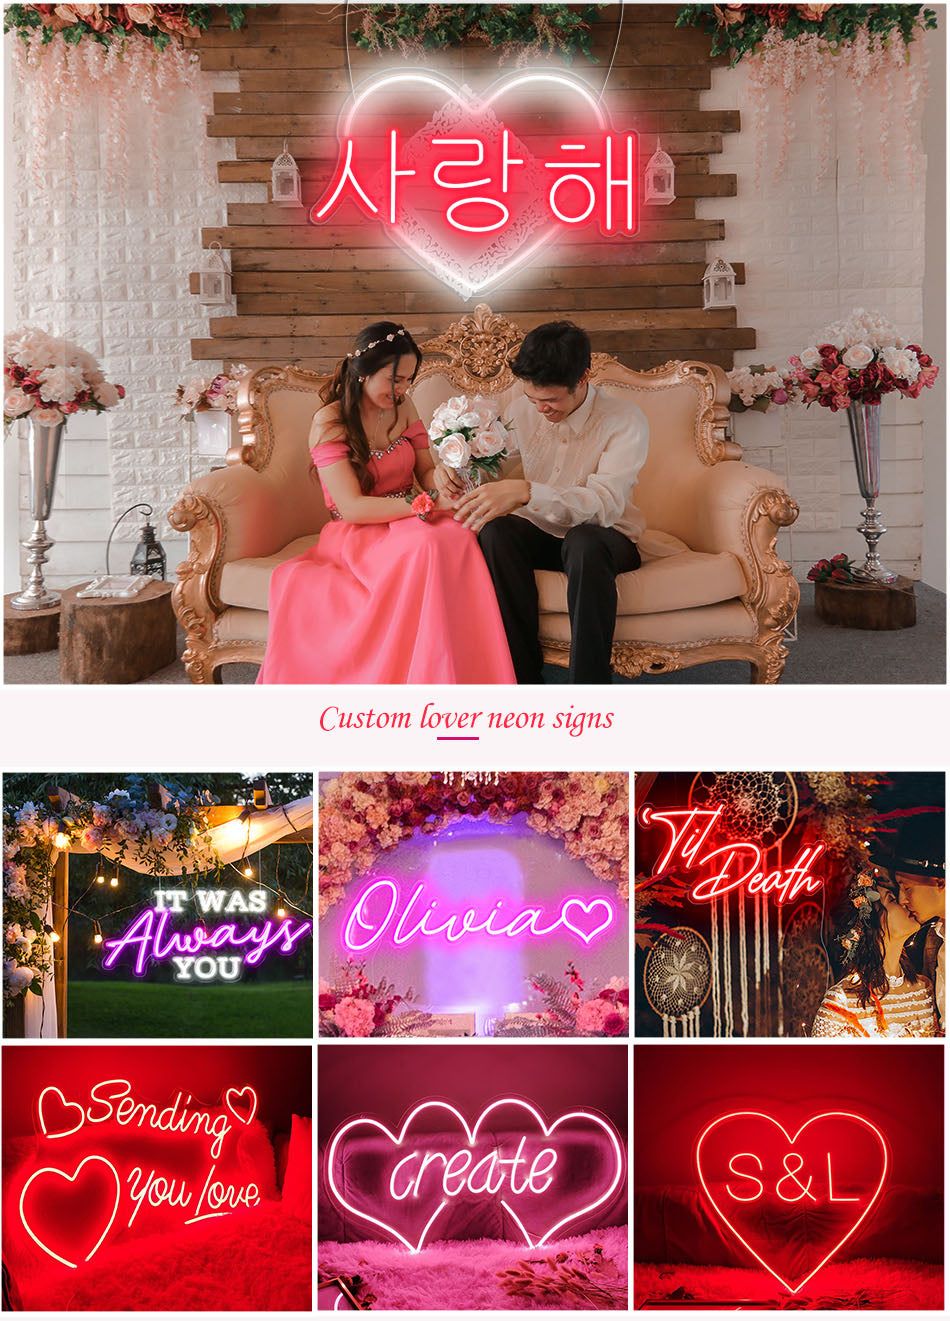 lover neon signs